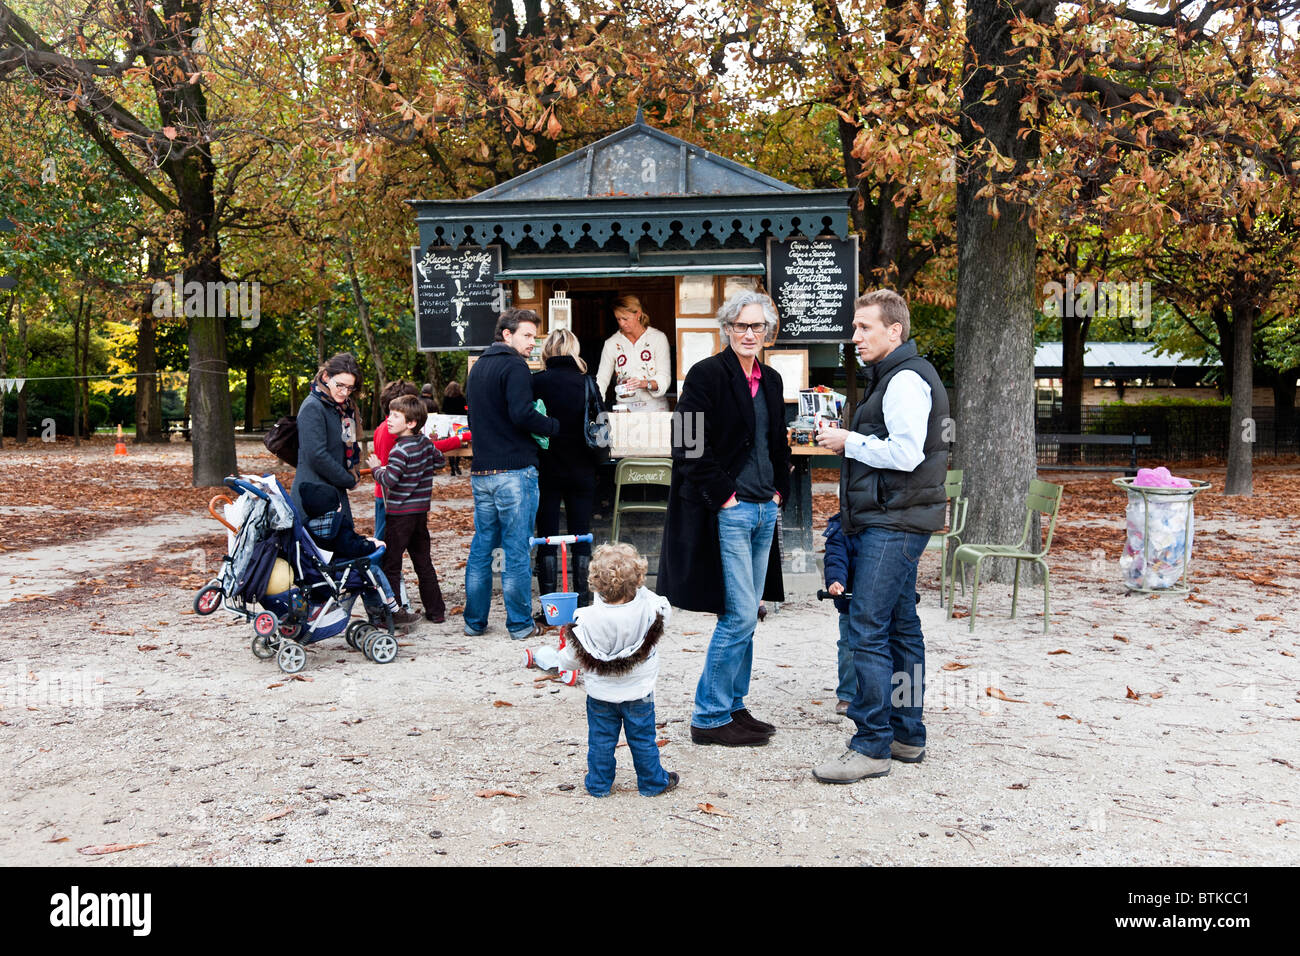 Parisian parents with young children cluster around ice cream kiosk in Luxembourg Gardens on beautiful autumn Sunday - Stock Image